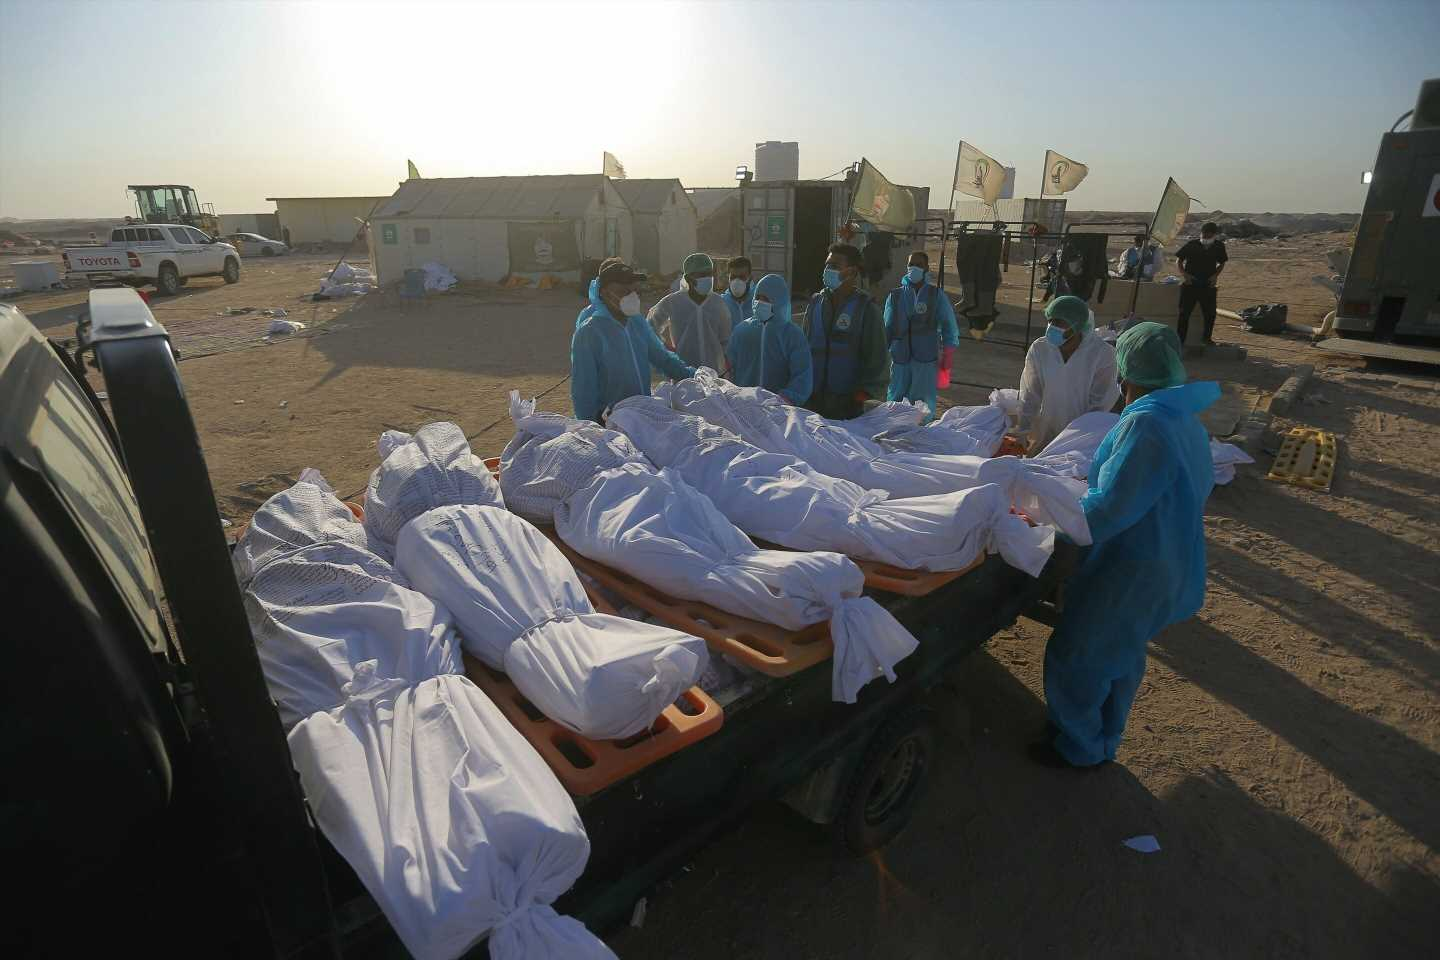 No region in the world spared as virus cases, deaths surge